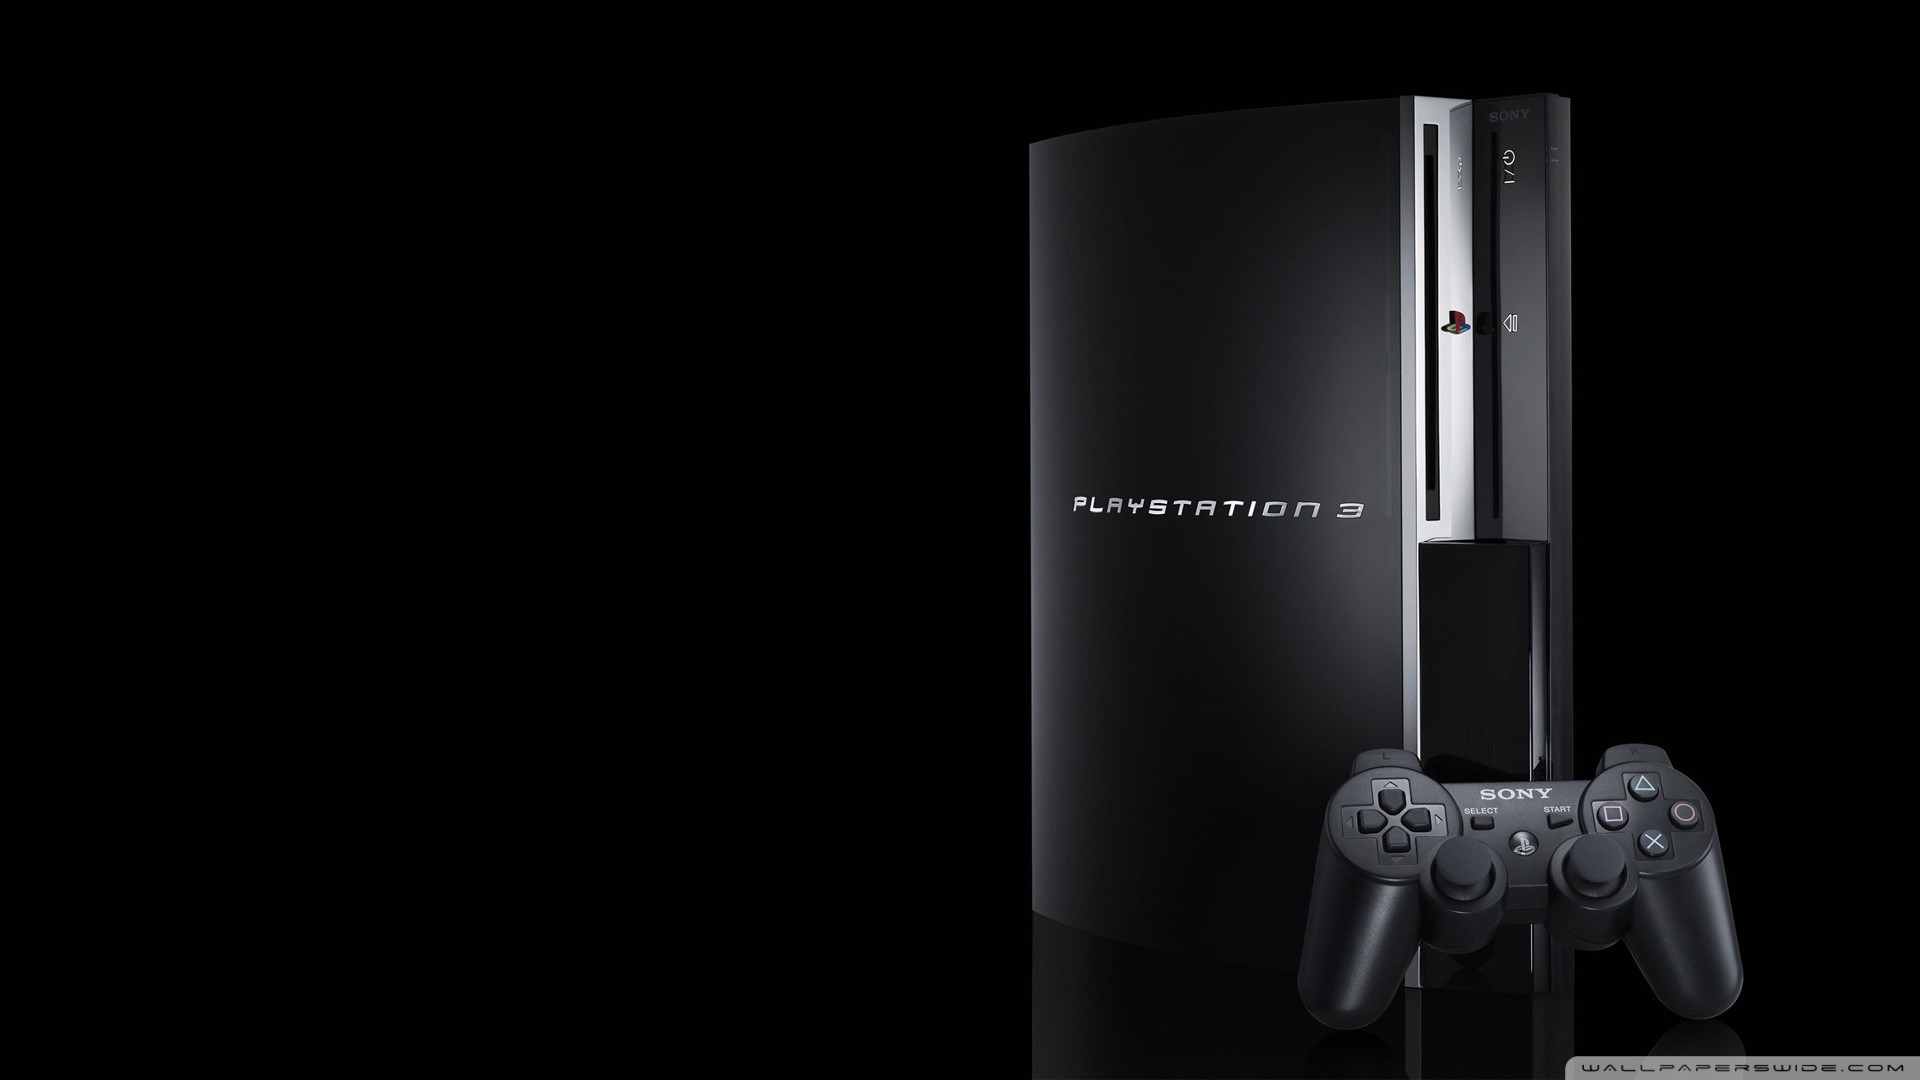 playstation 3 wallpapers (67+ background pictures)